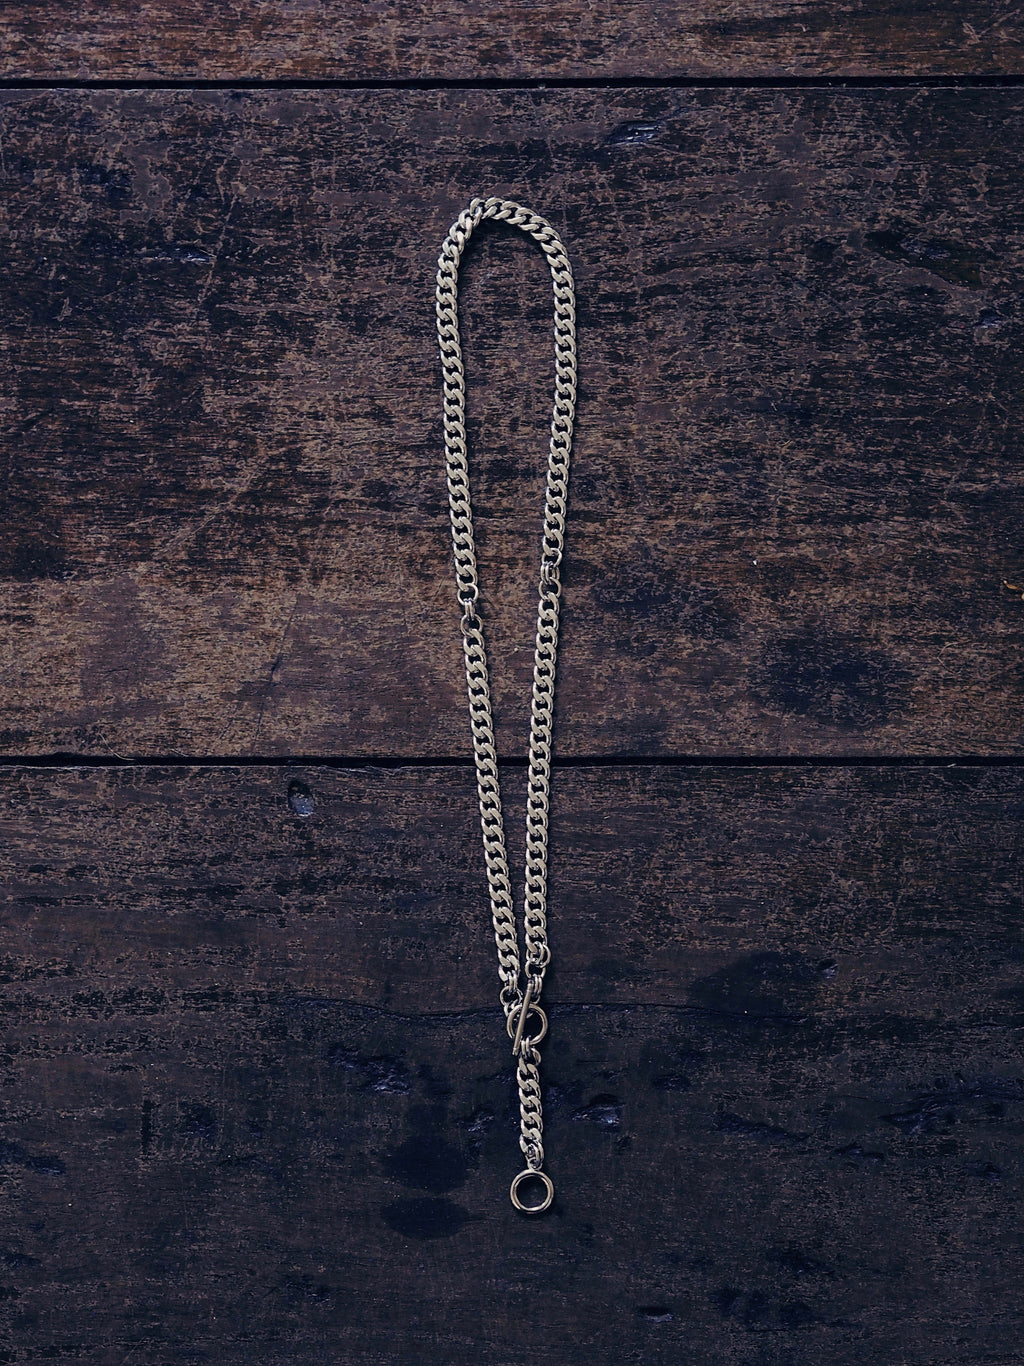 BONNITA necklace - Rhodium